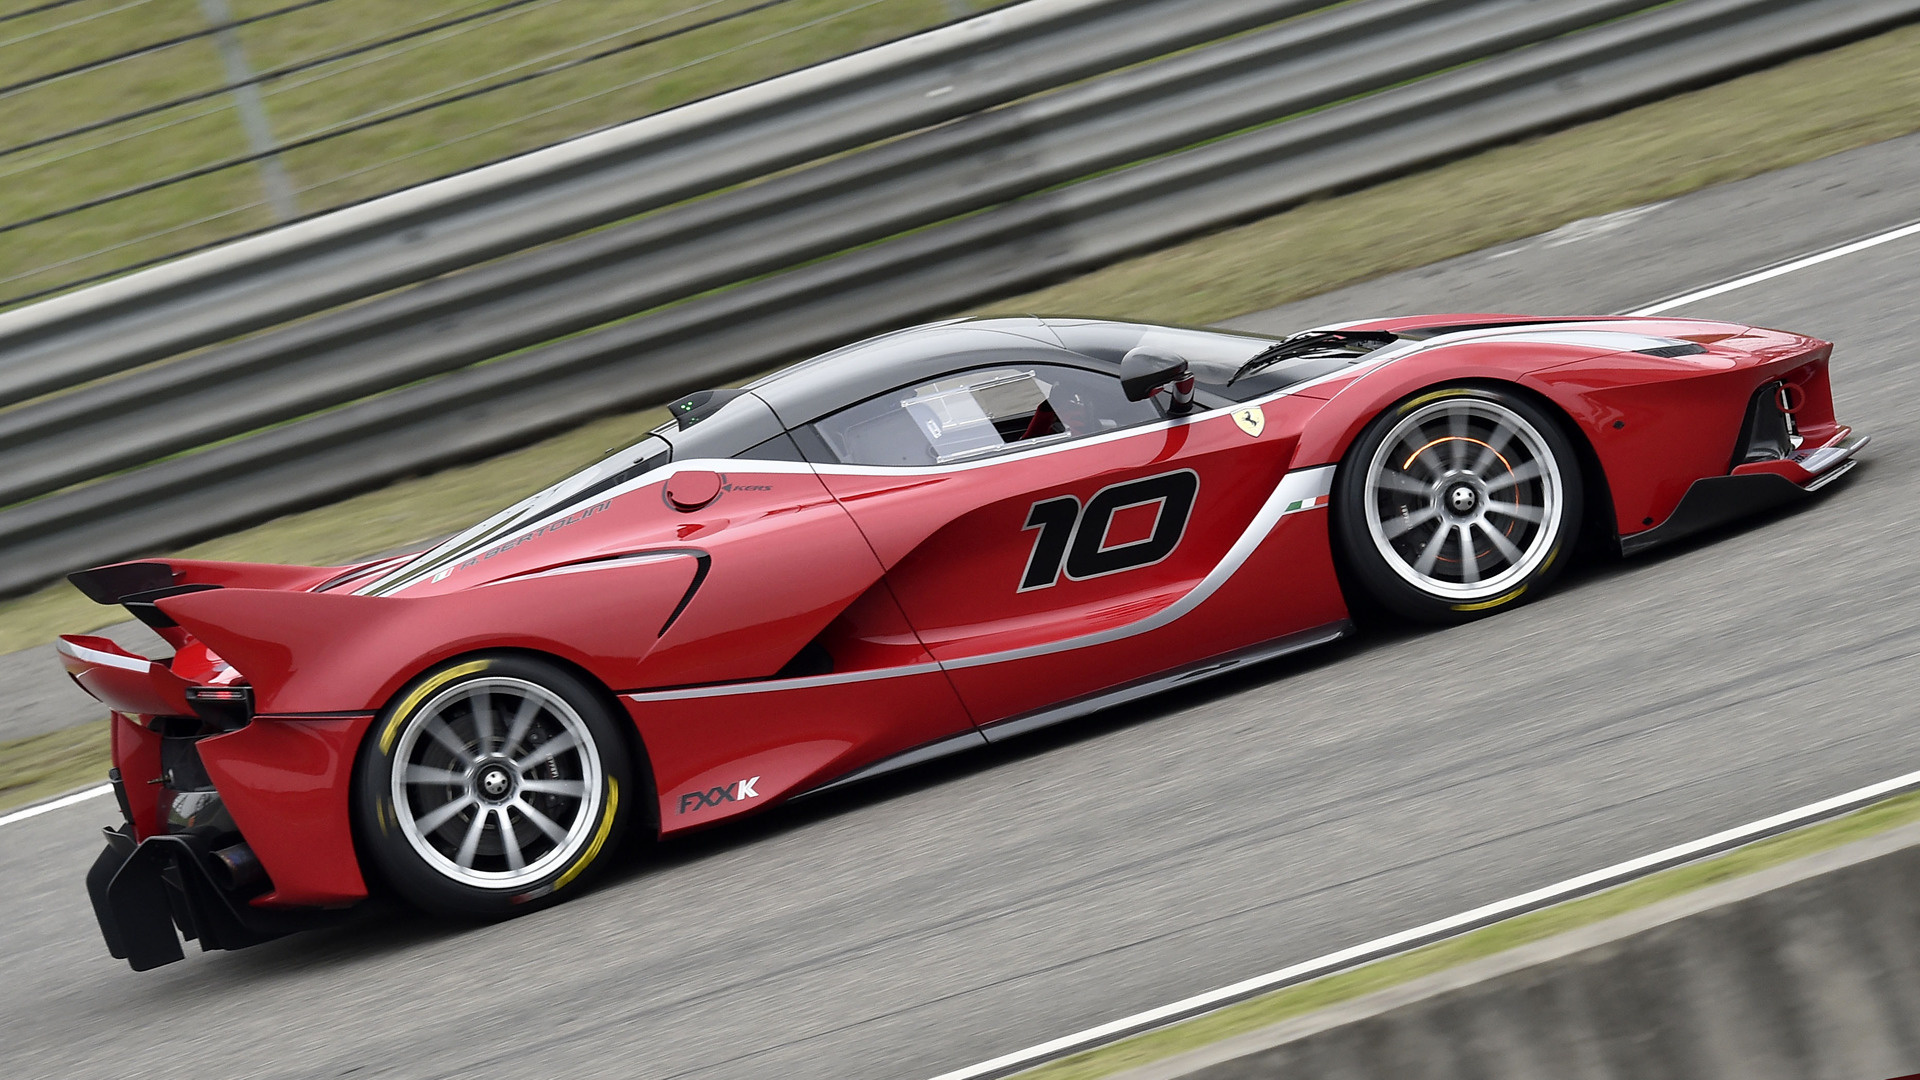 2015 Ferrari Fxx K Wallpapers And Hd Images Car Pixel